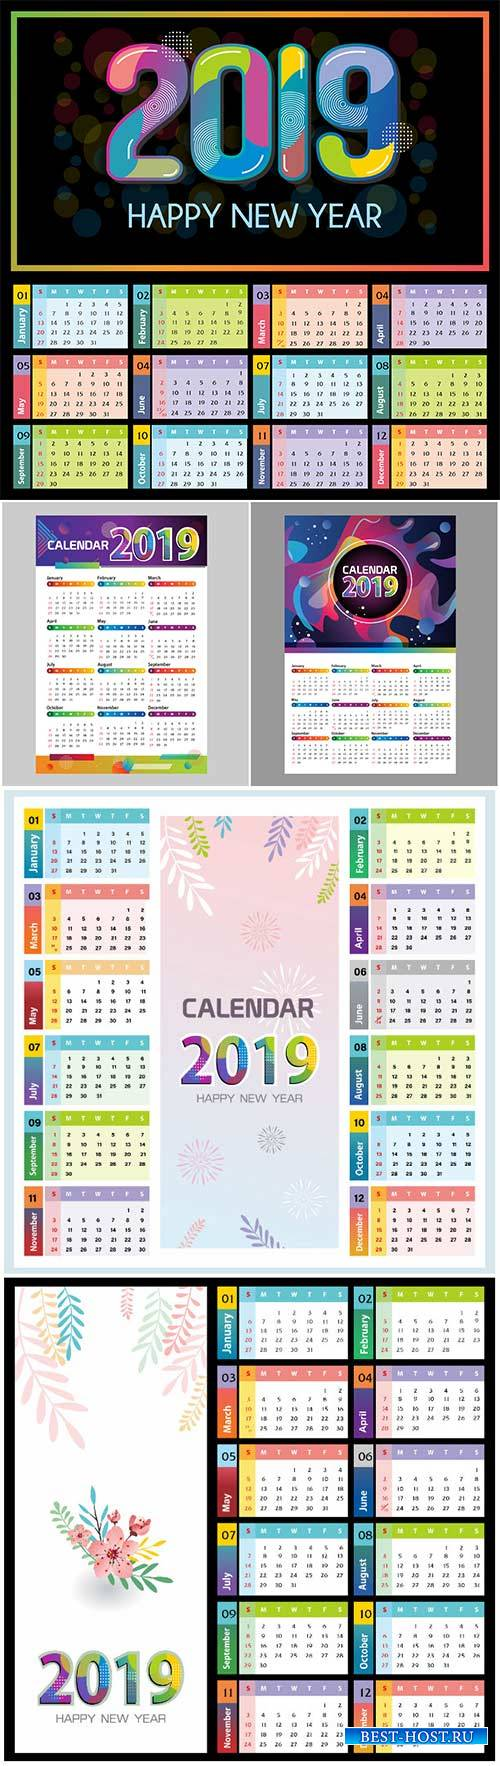 2019 calendar vector design template